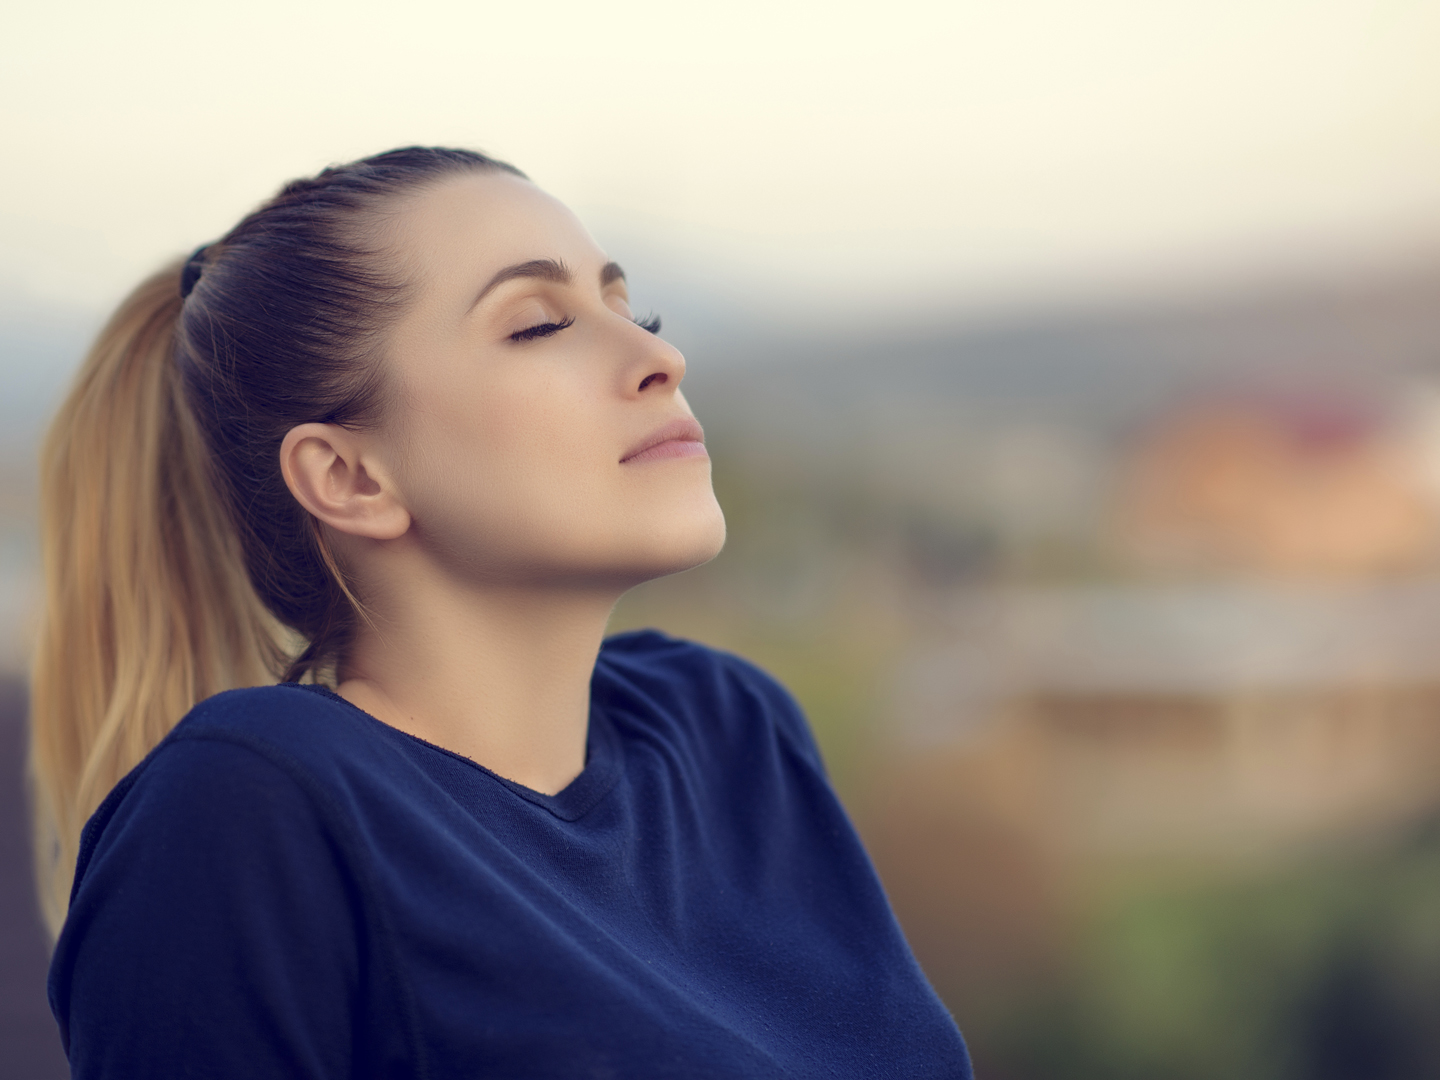 Breathing - The first key to healthy living,breathing exercises,breathing problems,breathing techniques,breathing exercises for stress,yoga